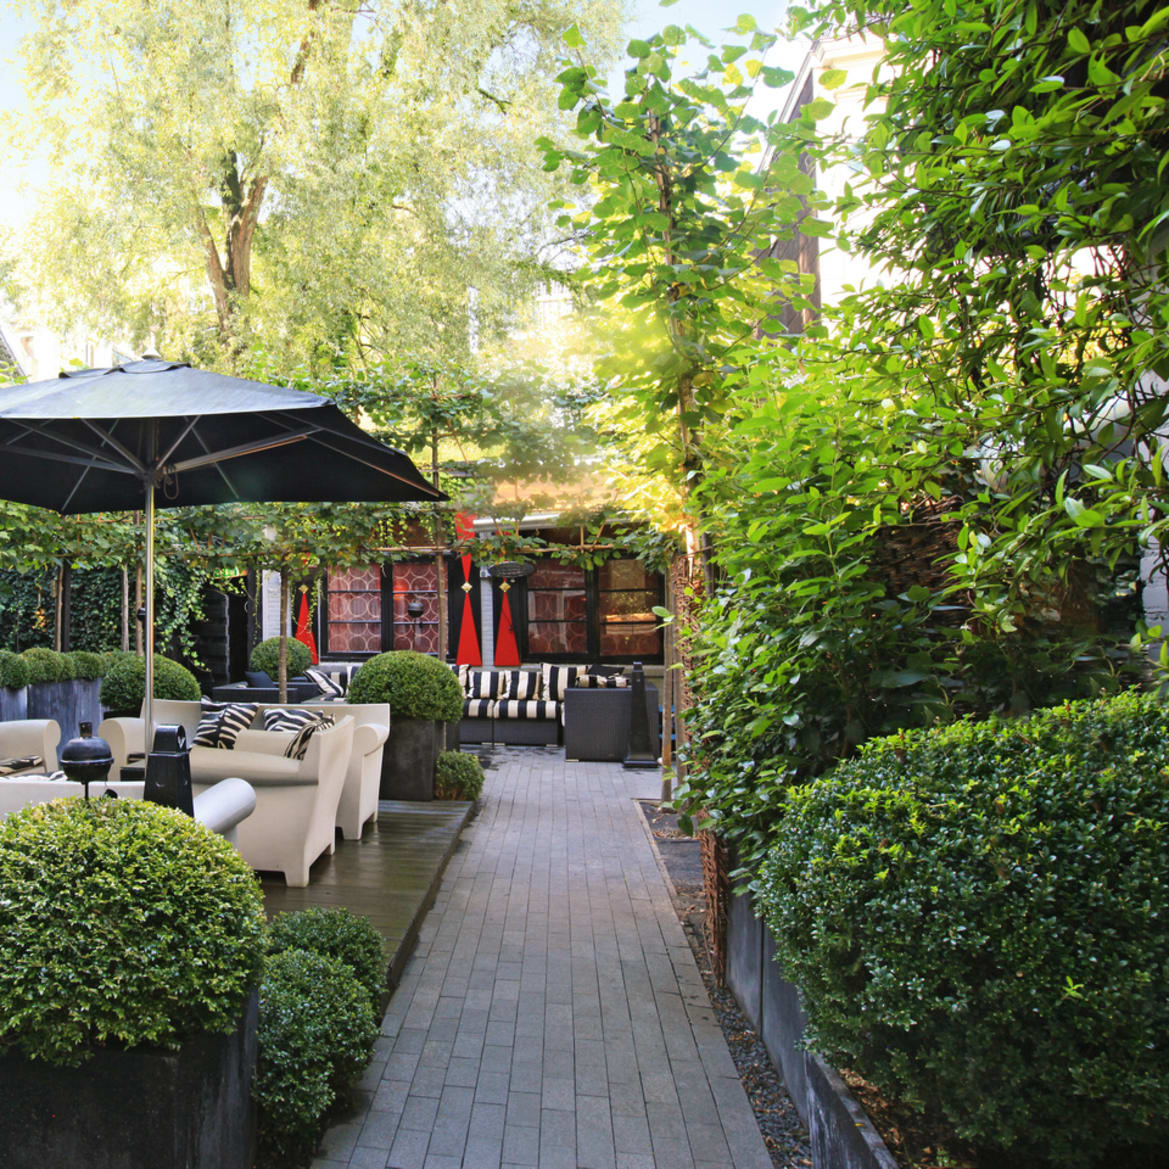 Silent Garden - The Toren Amsterdam - By the Pavilions